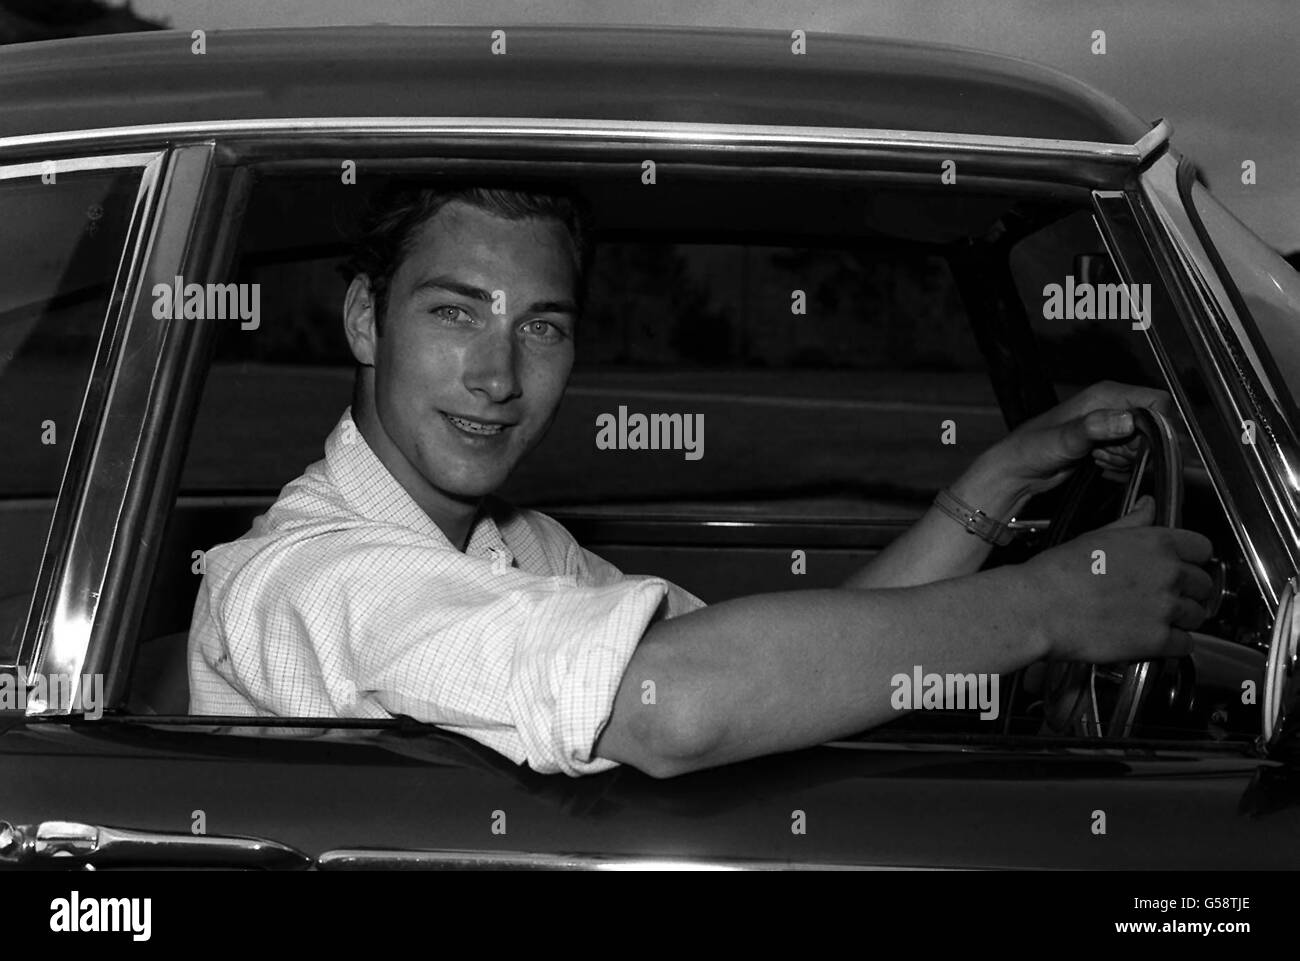 1962: Prince William of Gloucester, who loves driving, pictured at the wheel of his car at his home, Barnwell Manor, near Peterborough. The Prince, elder son of the Duke and Duchess of Gloucester, celebrates his 21st birthday on December 18th. He is 7th in line of succession to the throne. (Killed in air accident 28/8/72). Stock Photo